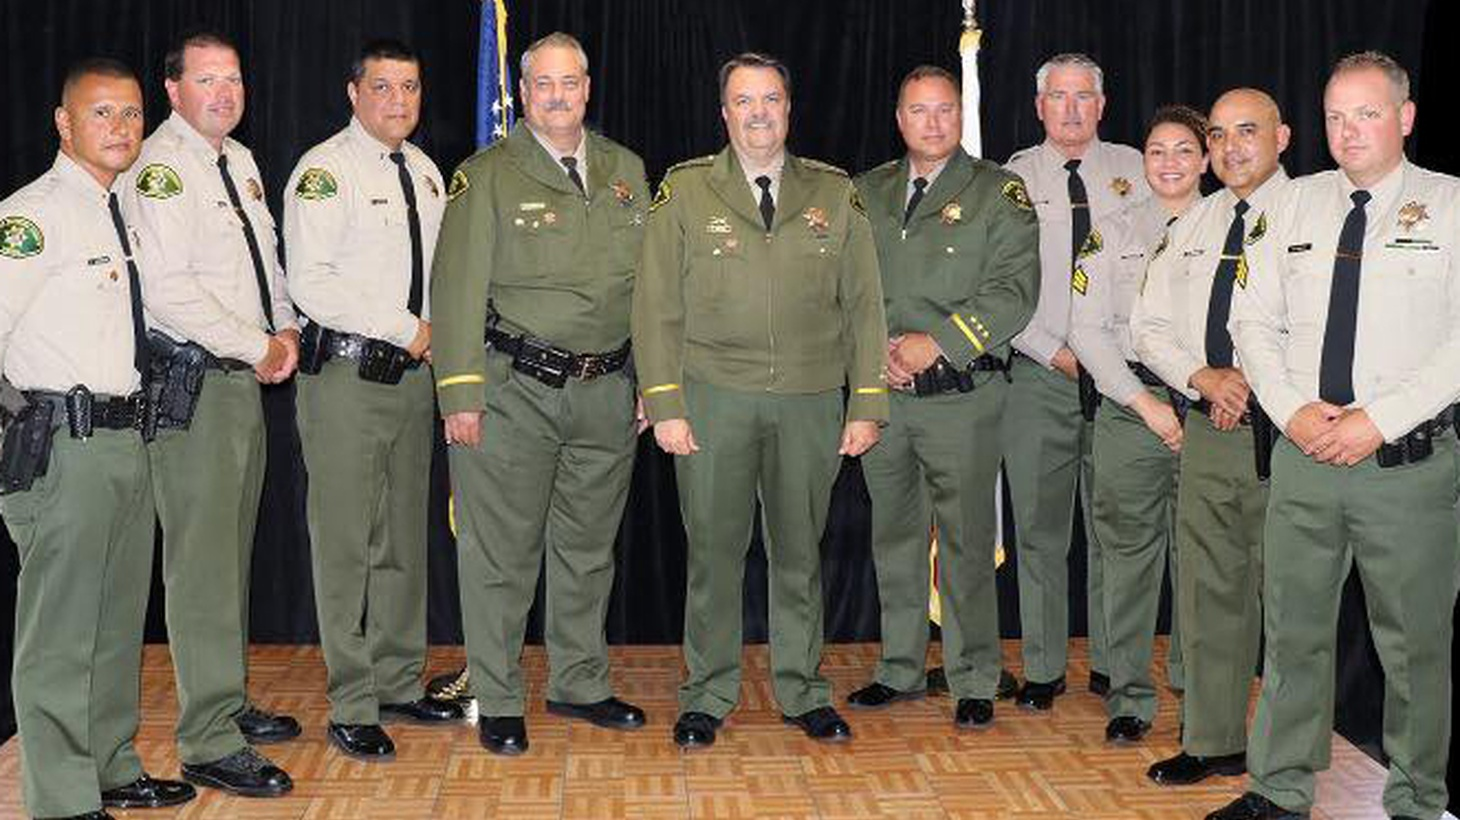 Santa Barbara County Sheriff Bill Brown is up for re-election, and a large group of deputies have decided to support one of Brown's competitors.